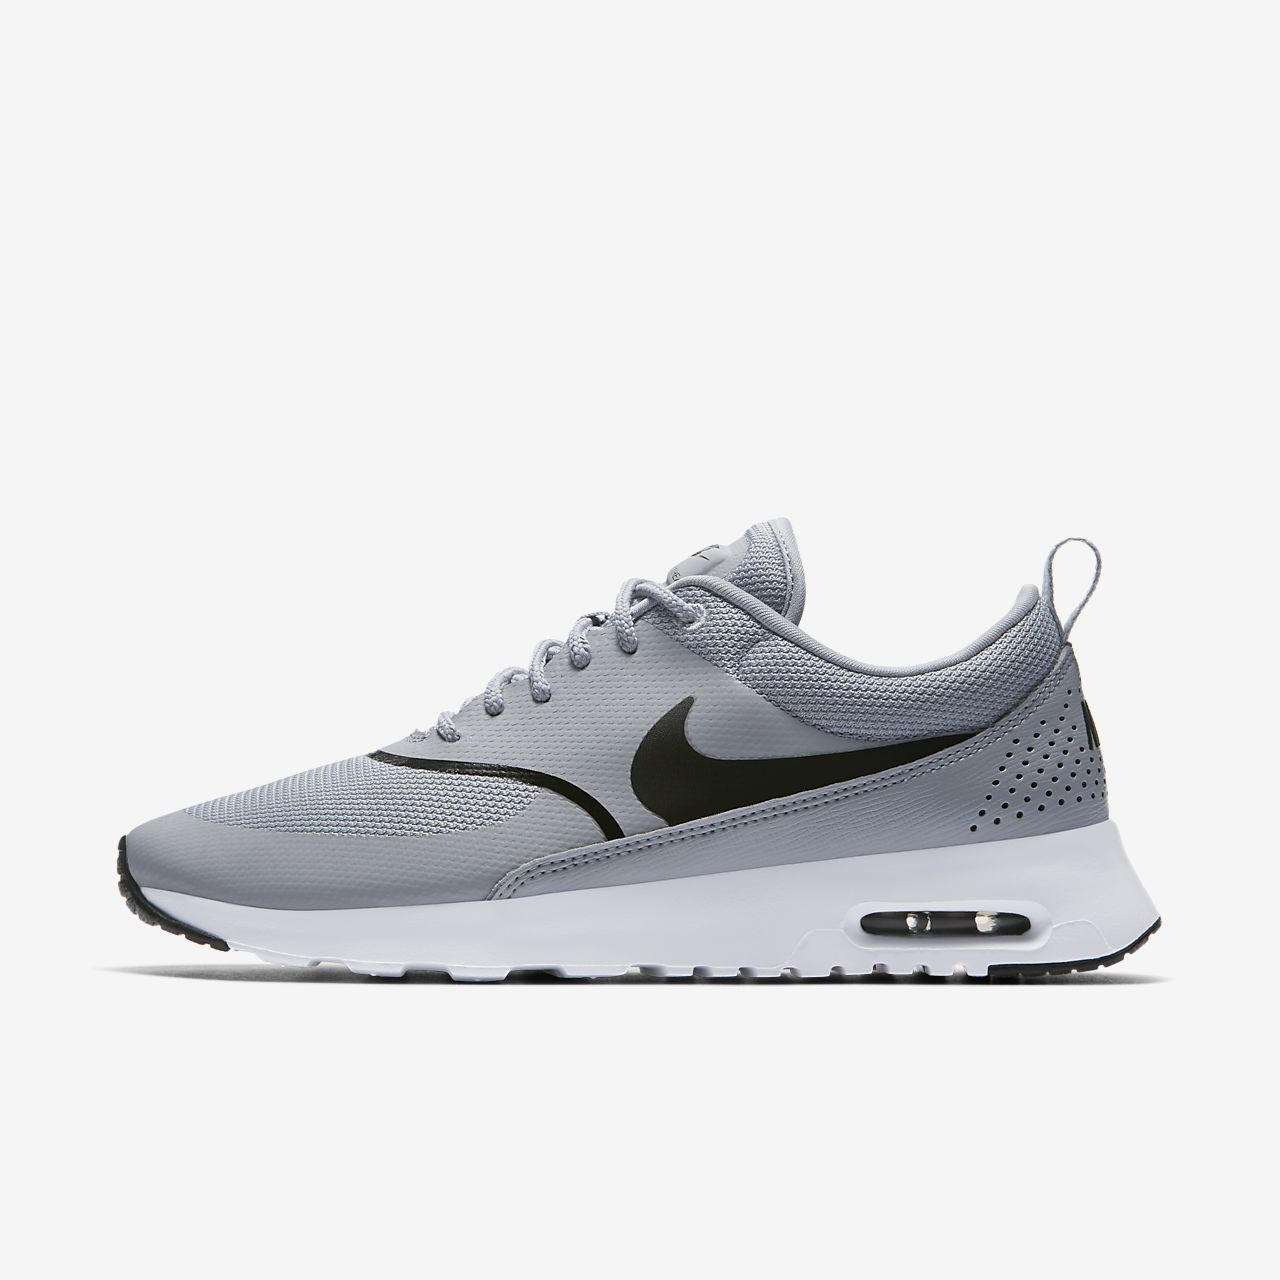 reputable site 5202c 16269 ... Nike Air Max Thea Women s Shoe